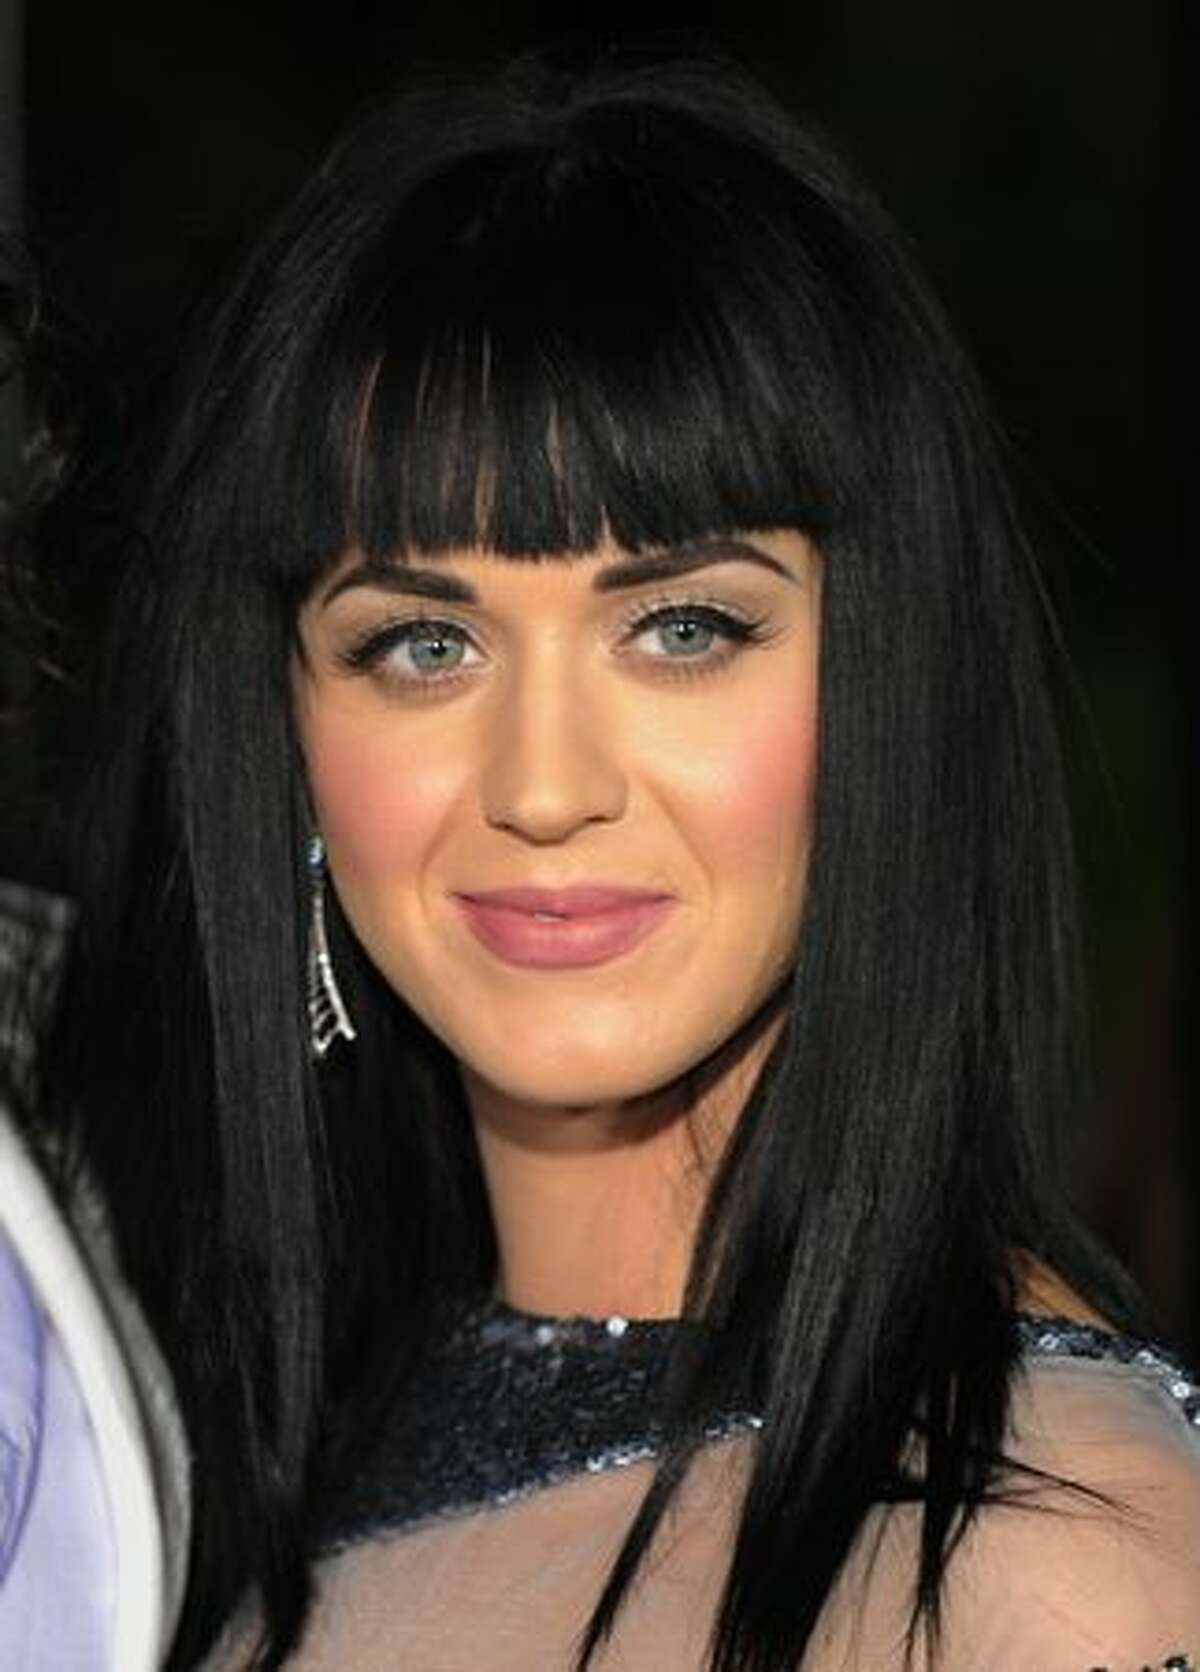 Singer Katy Perry poses on the red carpet as she arrives for the premiere of the comedy movie